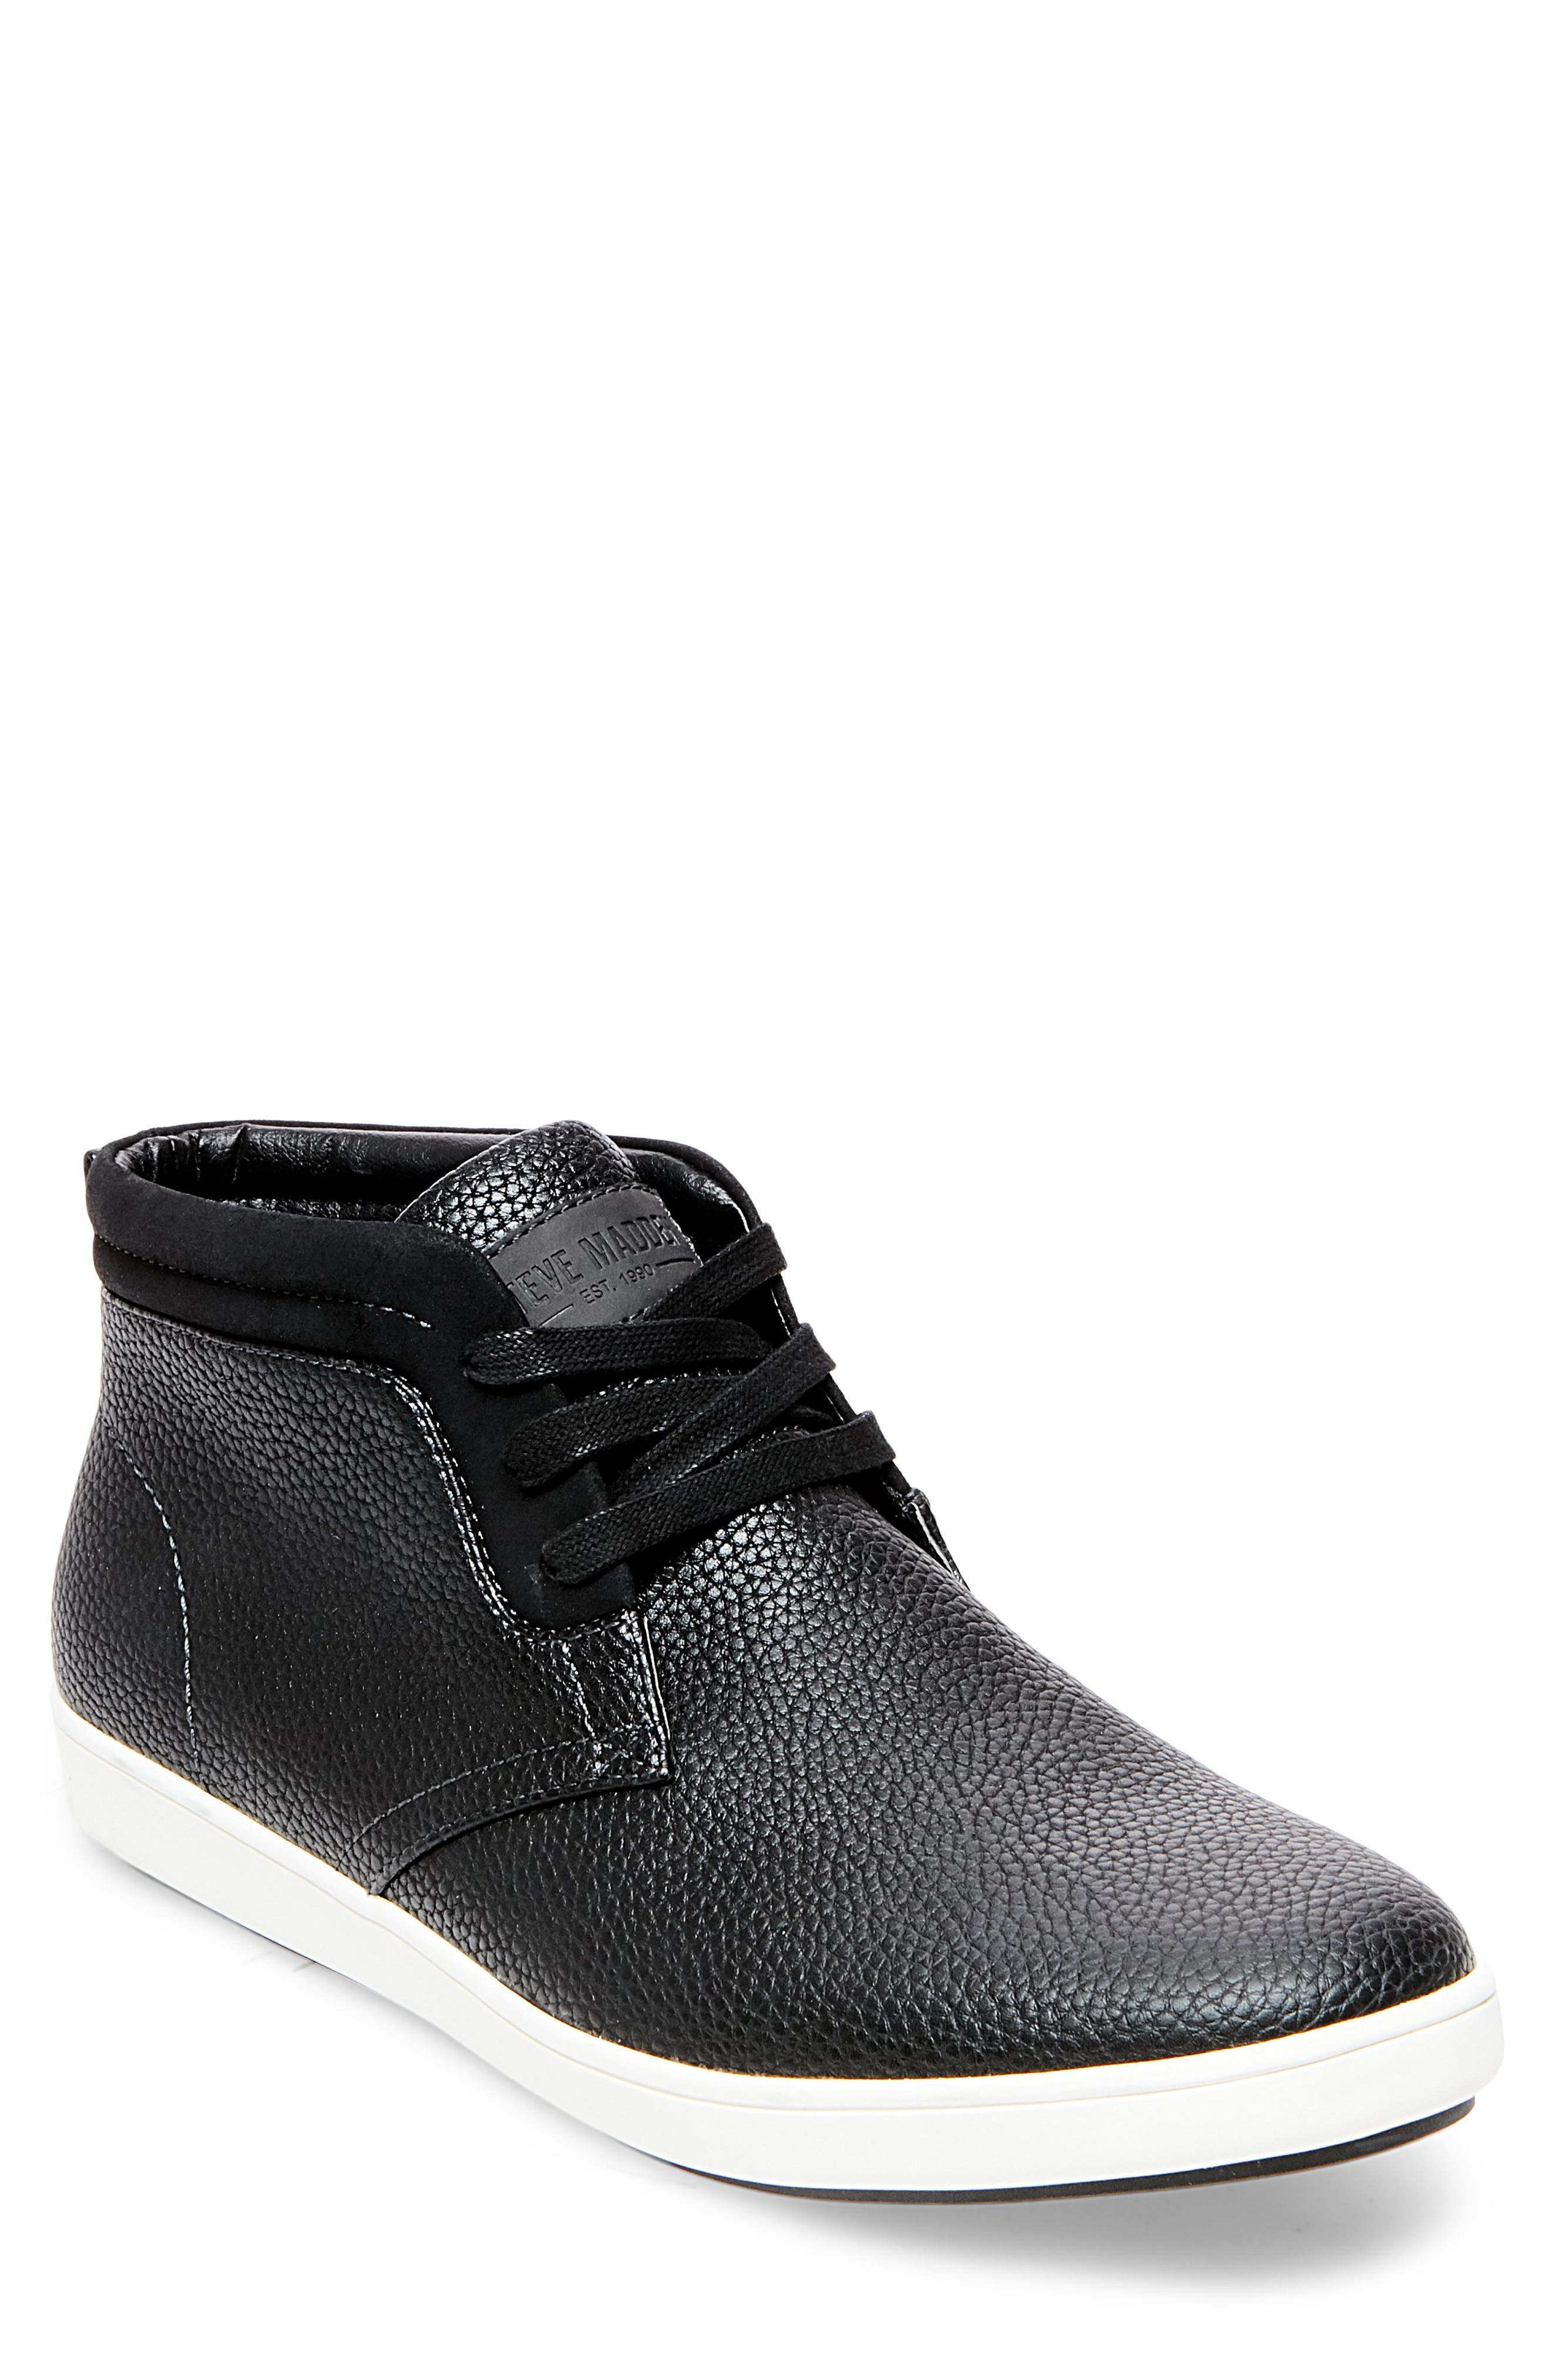 Fenway Sneaker,                             Main thumbnail 1, color,                             BLACK LEATHER